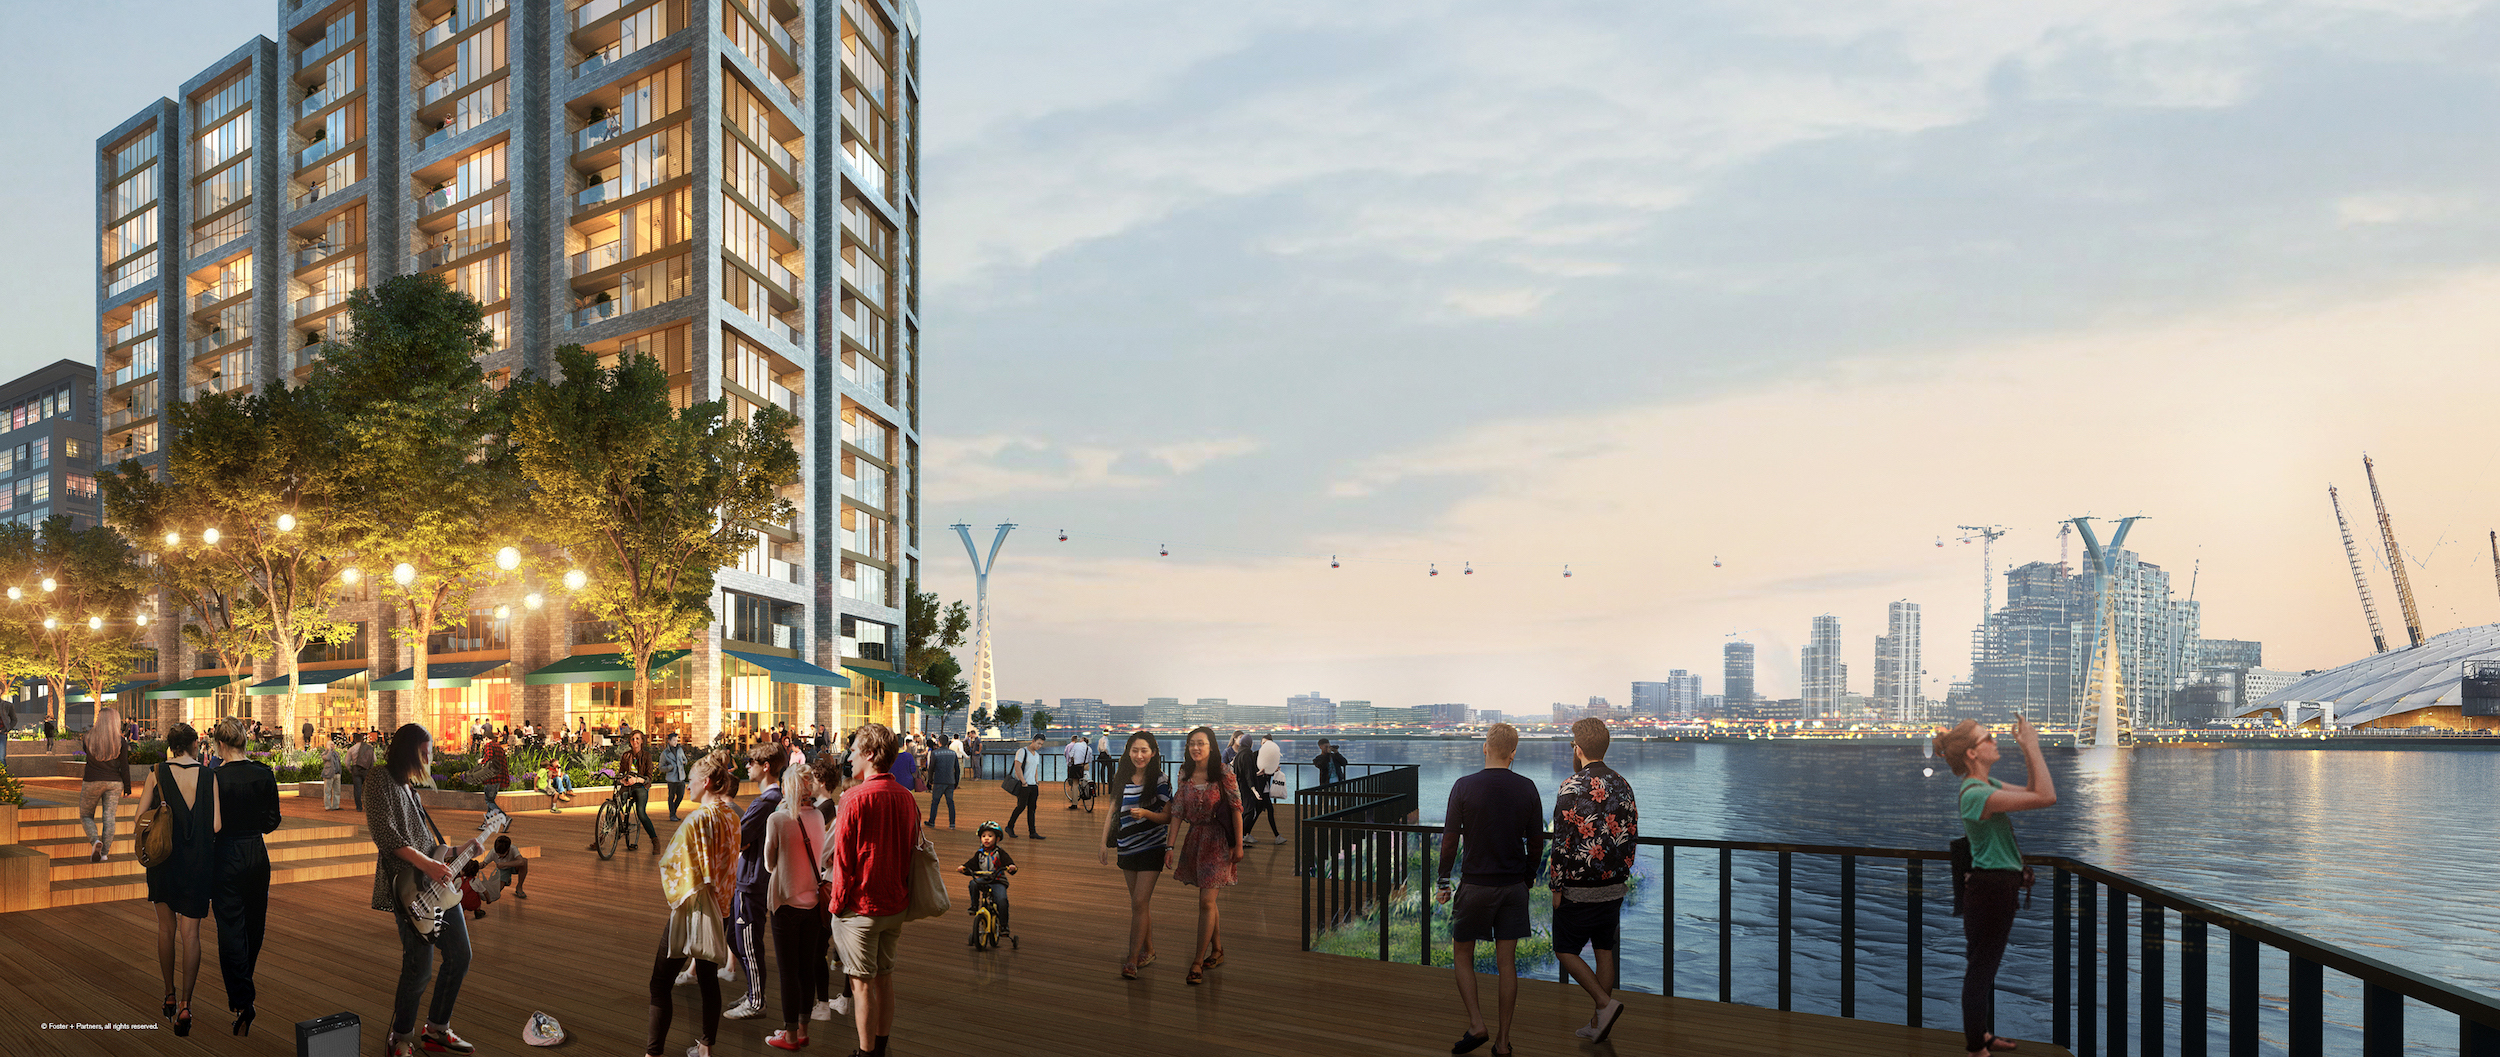 CGI impression of Thameside West development